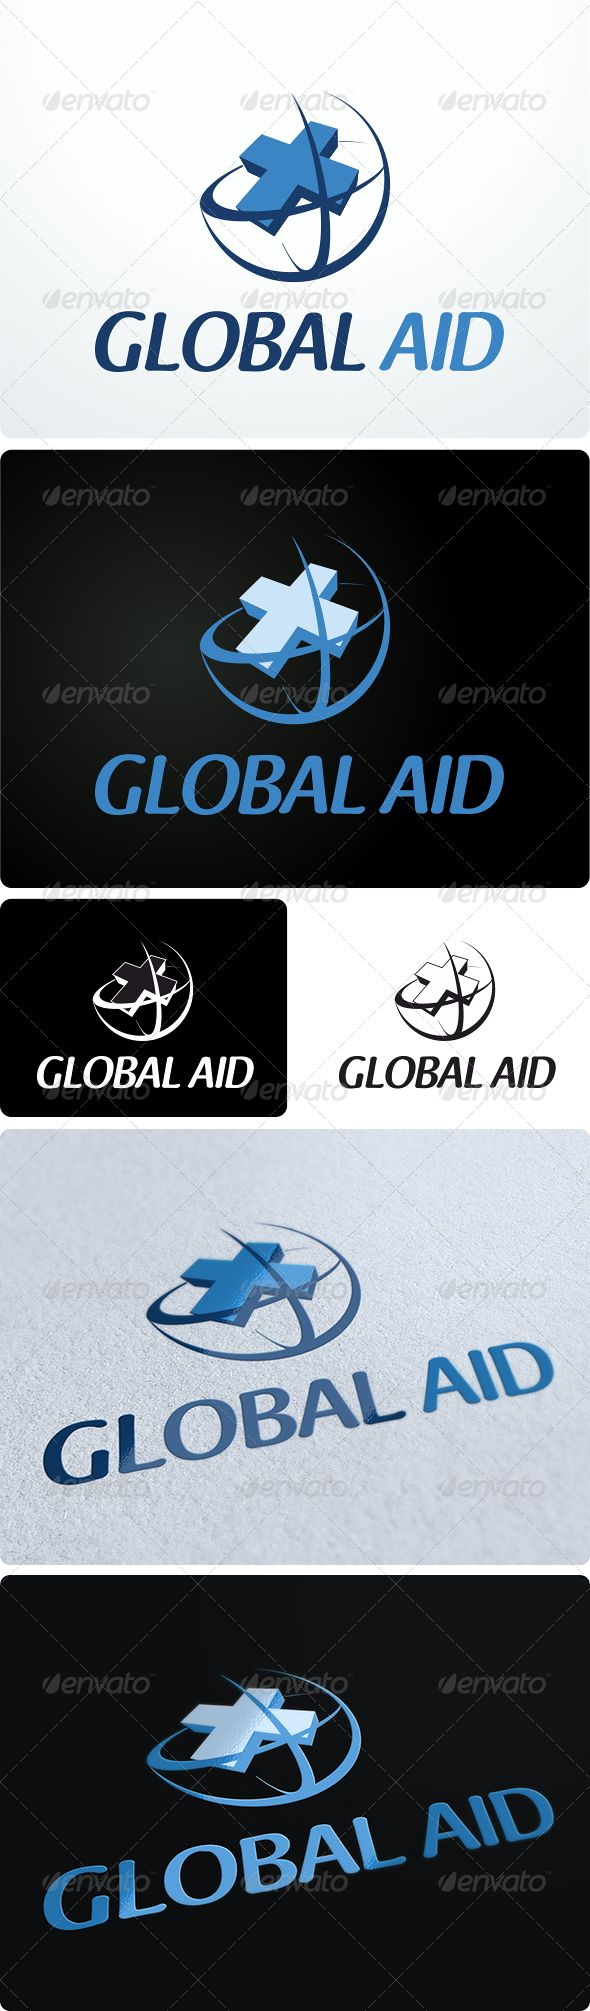 Global Aid Logo Design  #GraphicRiver         Creative medical / pharmacy logo design.  	 This product is FULLY customizable.  	 Type: Vector Versions included: 4 Files included: Corel Draw! .cdr, Adobe Illustrator .ai, .eps, transparent .png  Font used:  .dafont /wendelin.font 	 Enjoy!     Created: 16August12 GraphicsFilesIncluded: TransparentPNG #VectorEPS #AIIllustrator #CorelDRAWCDR Layered: No MinimumAdobeCSVersion: CS Resolution: Resizable Tags: aid #blue #clinic #cross #doctor #earth…